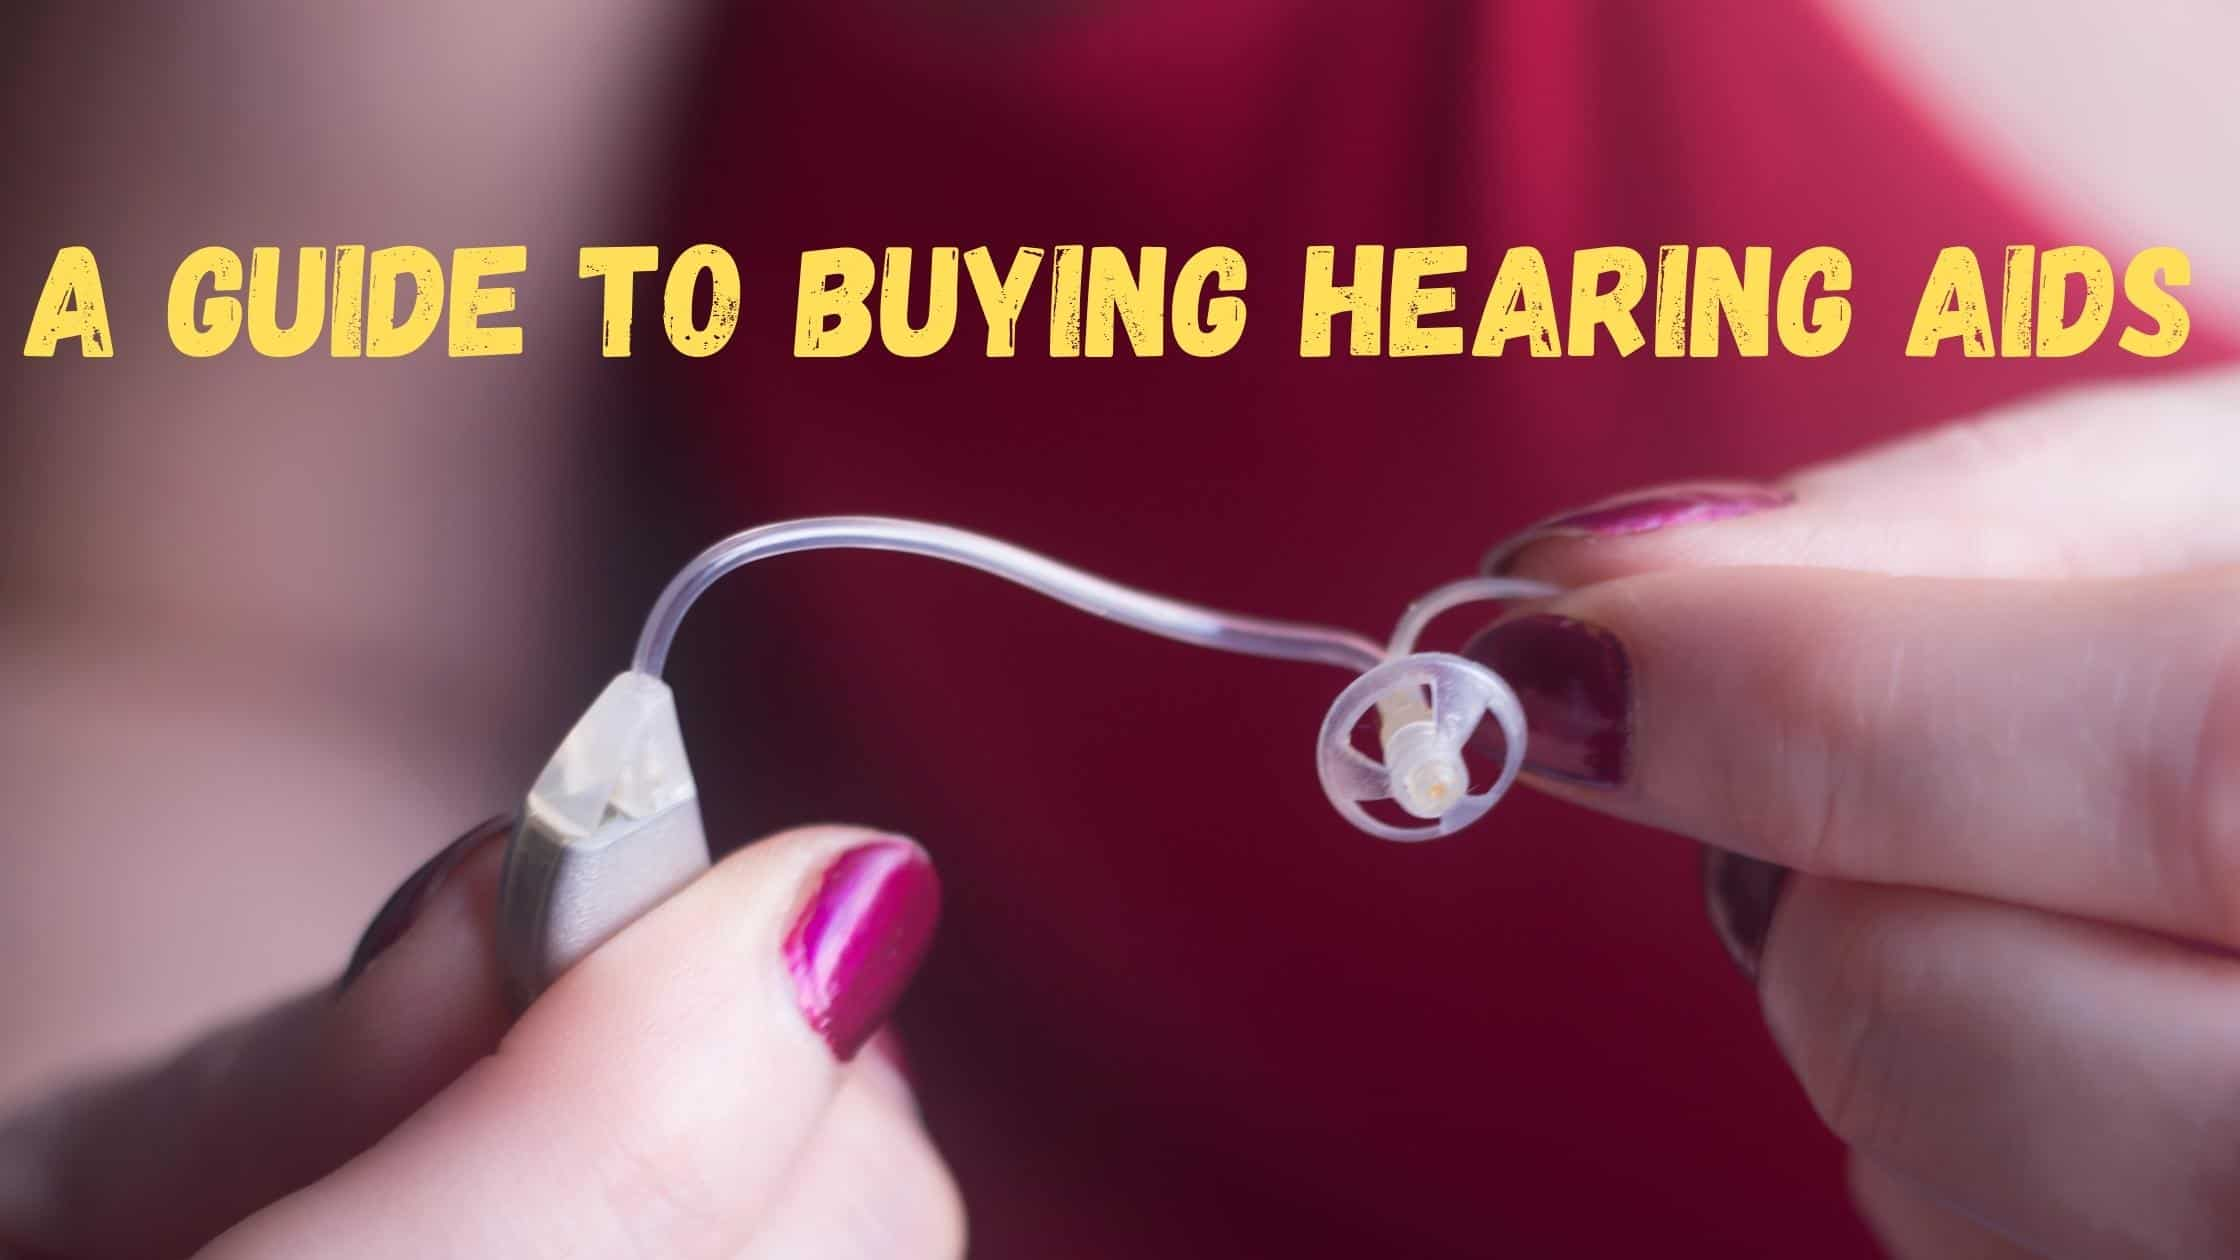 A Guide to Buying Hearing Aids